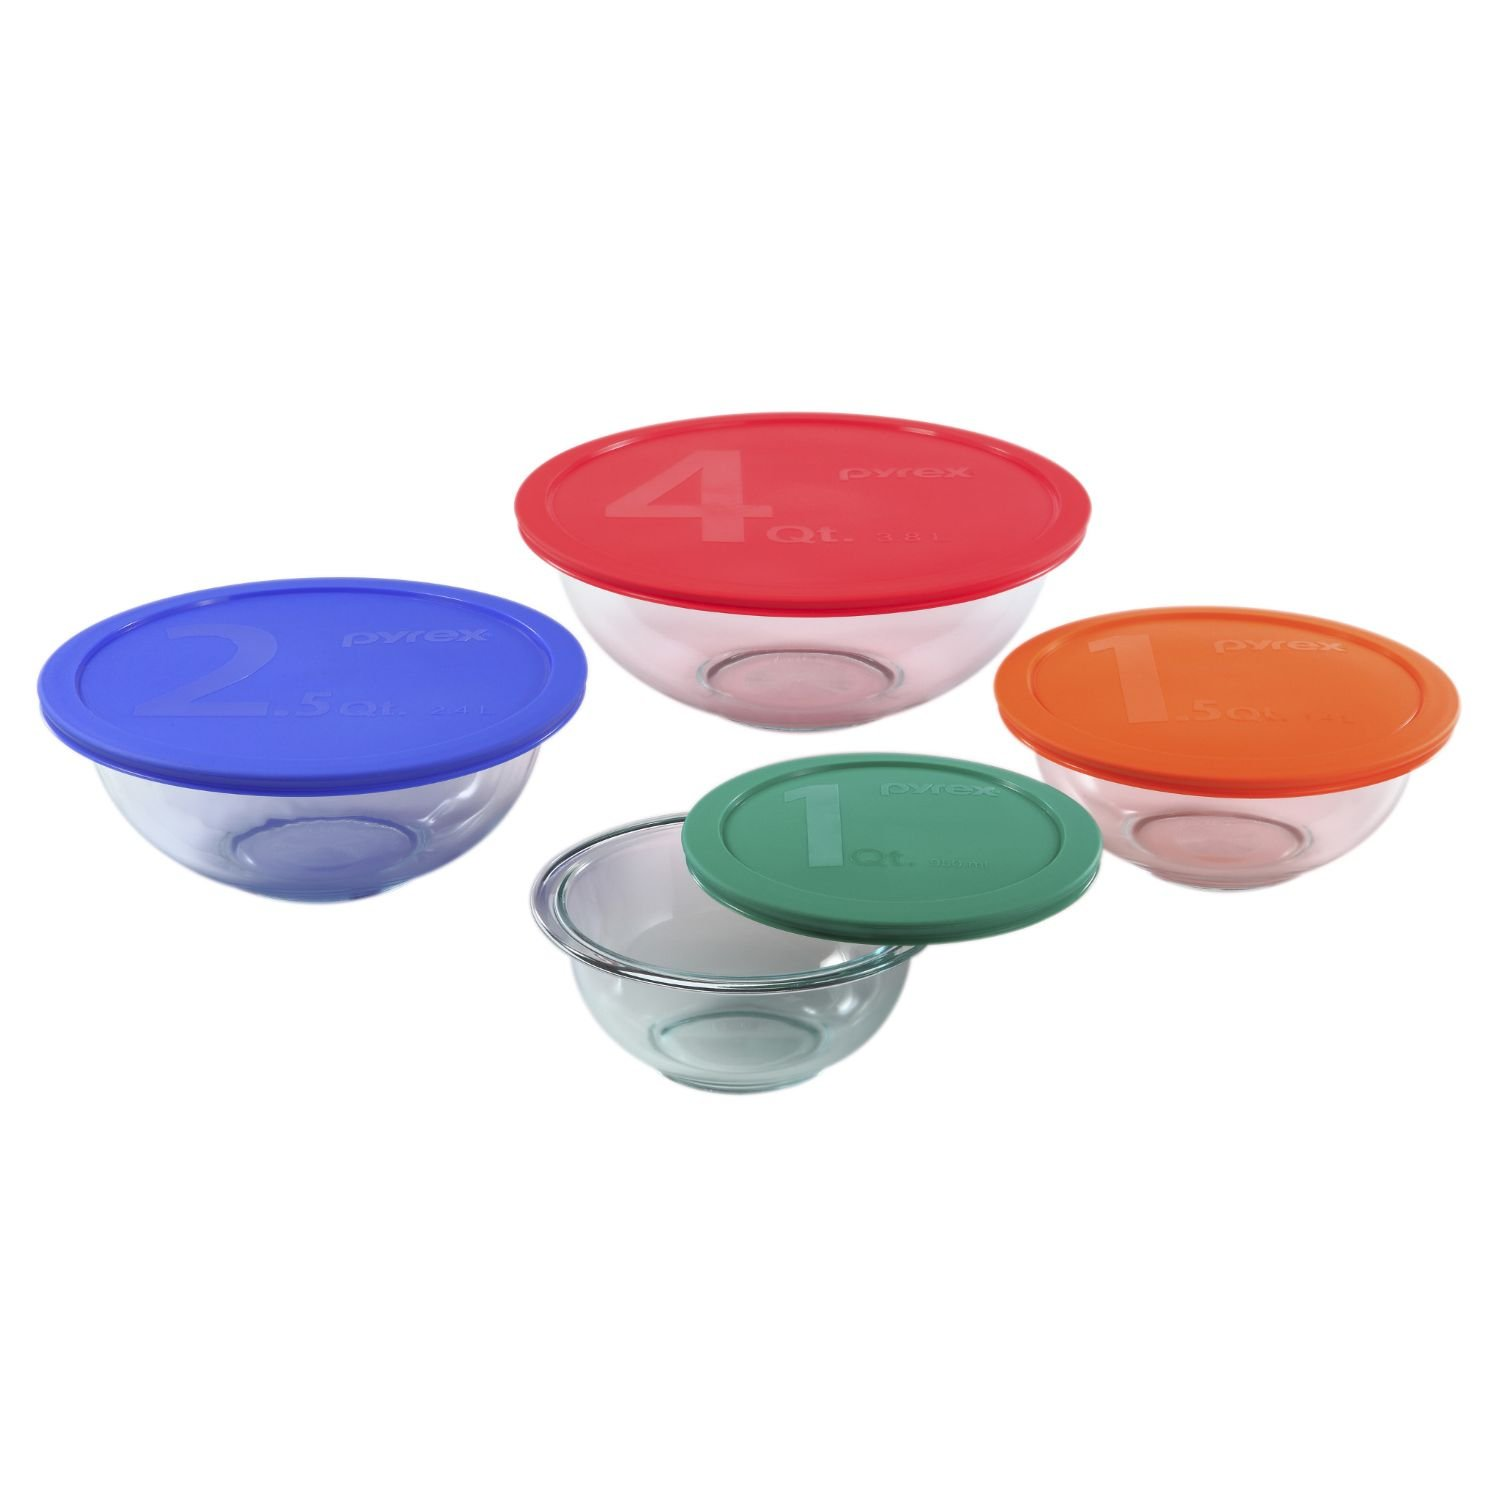 Pyrex 8-Pc Smart Essentials Glass Bowl Set